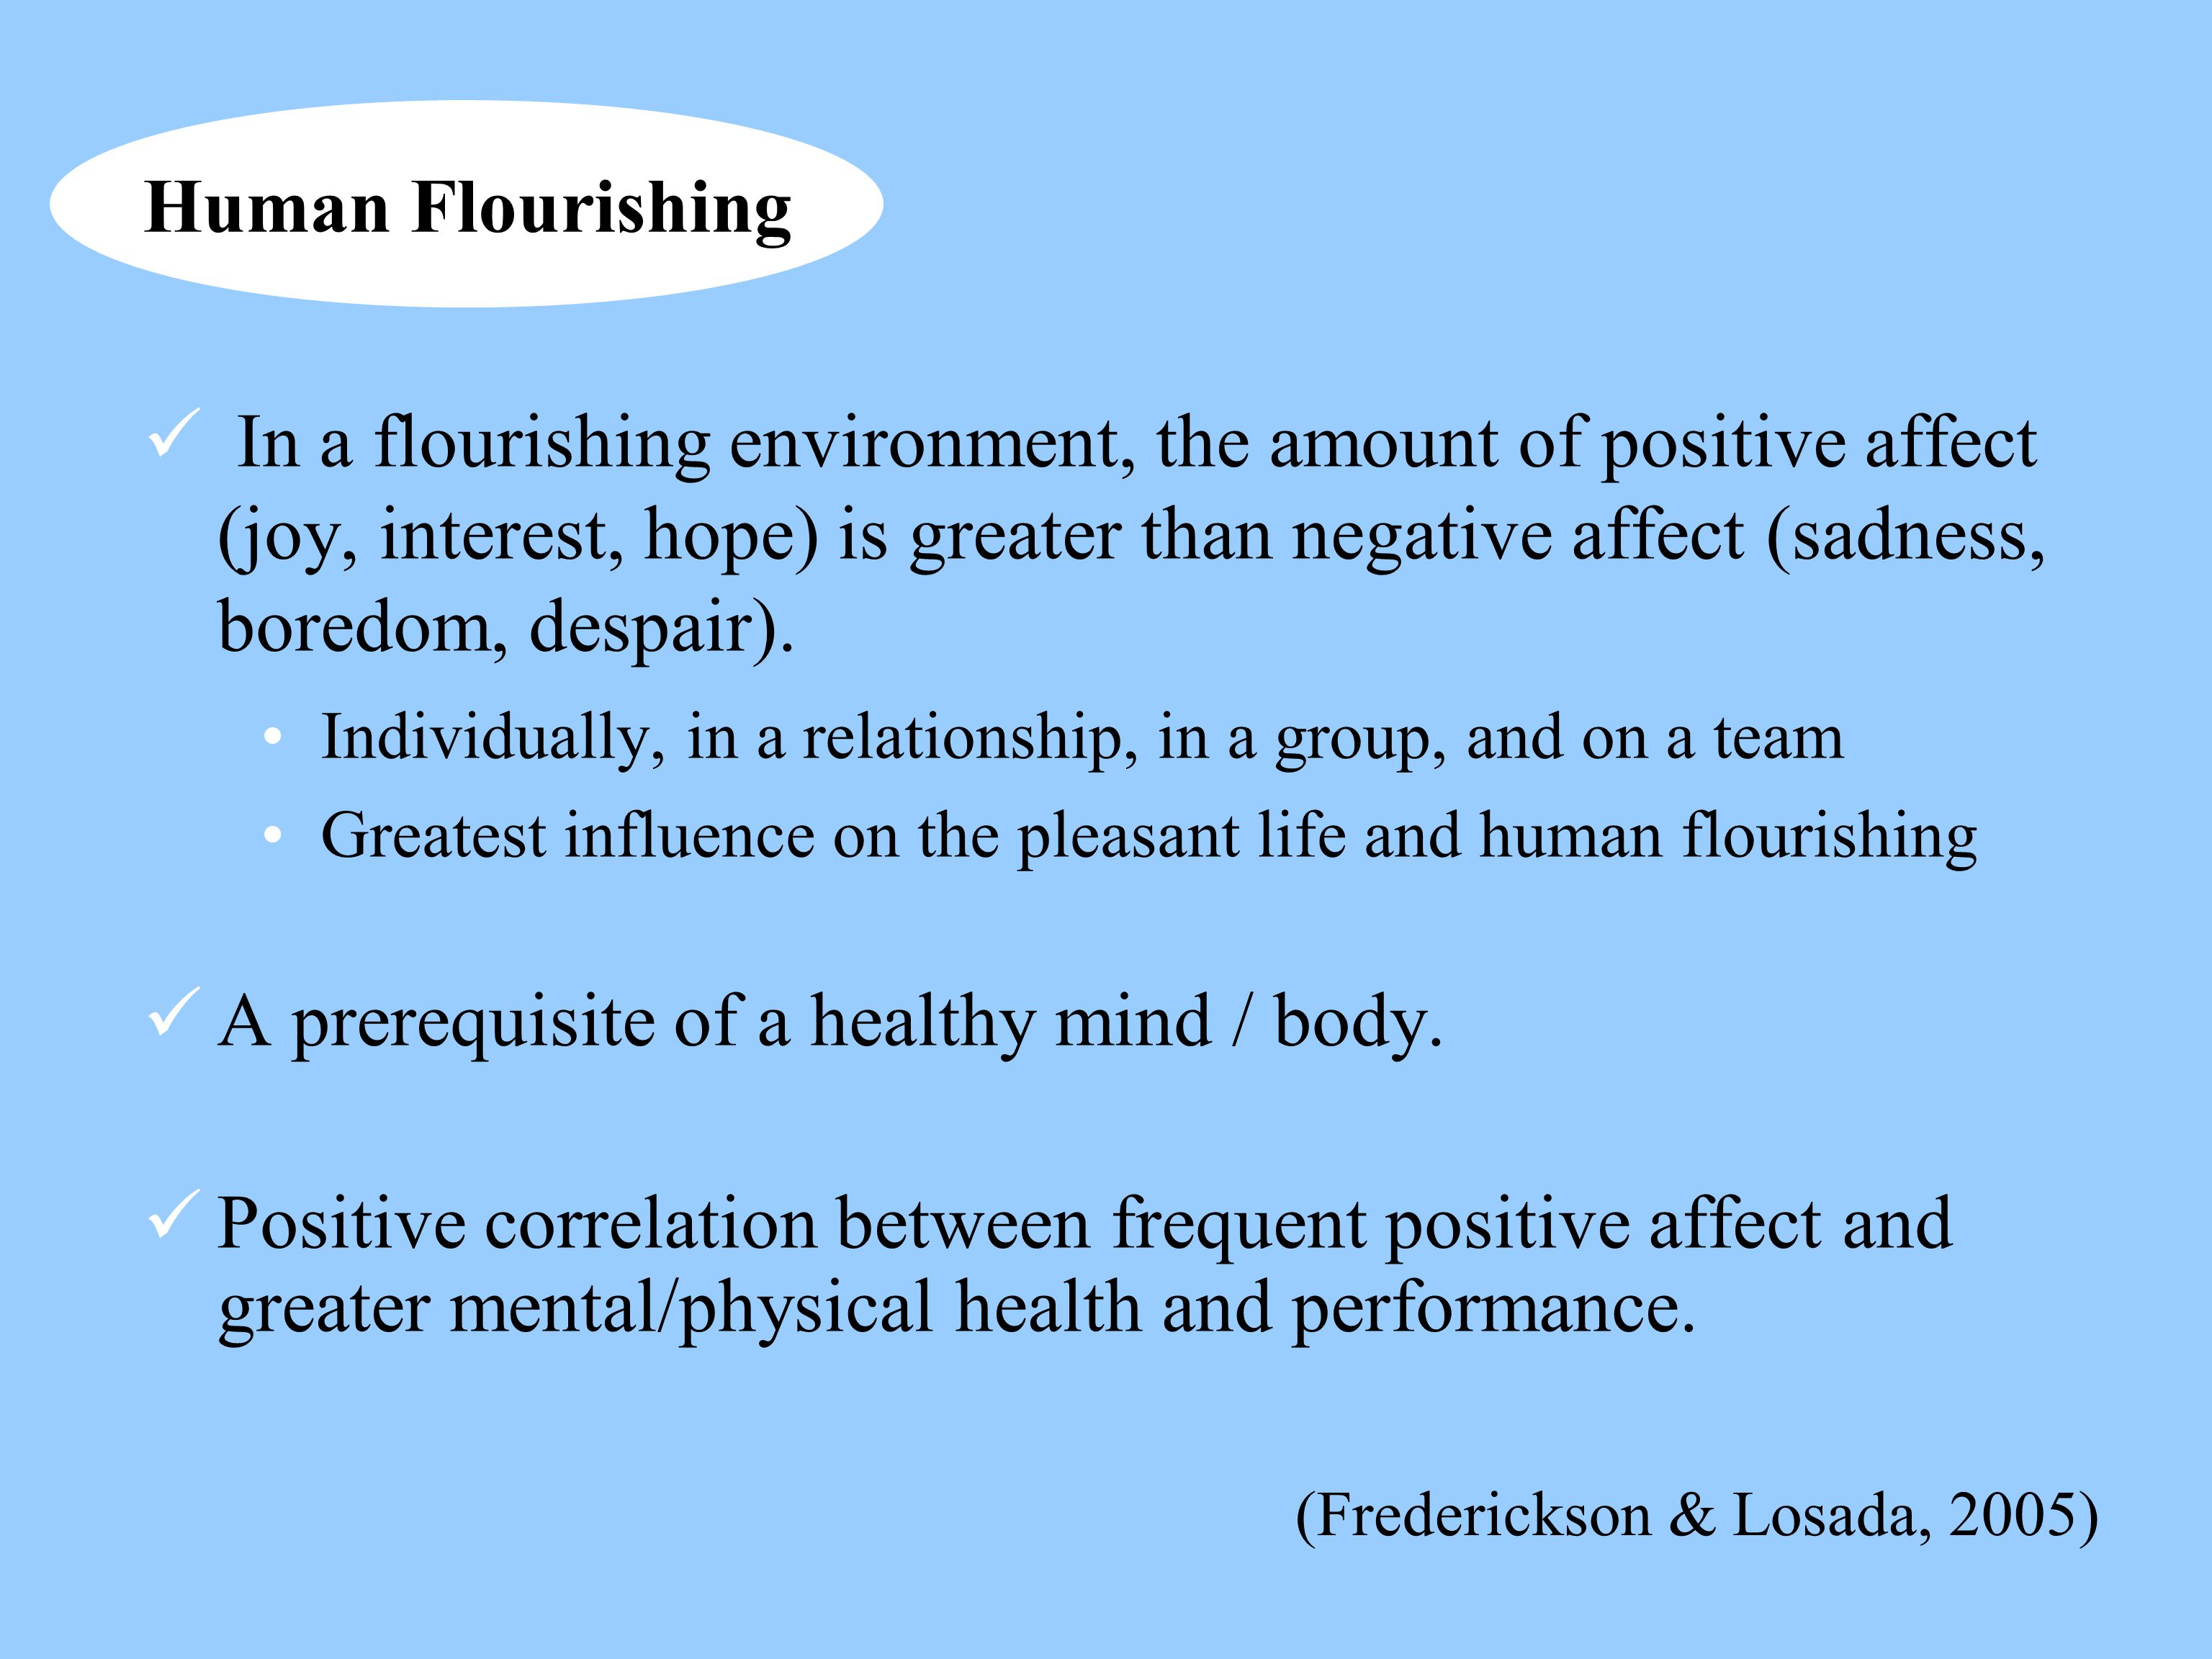 In a flourishing environment, the amount of positive affect (joy, interest, hope) is greater than negative affect (sadness, boredom, despair). Individ